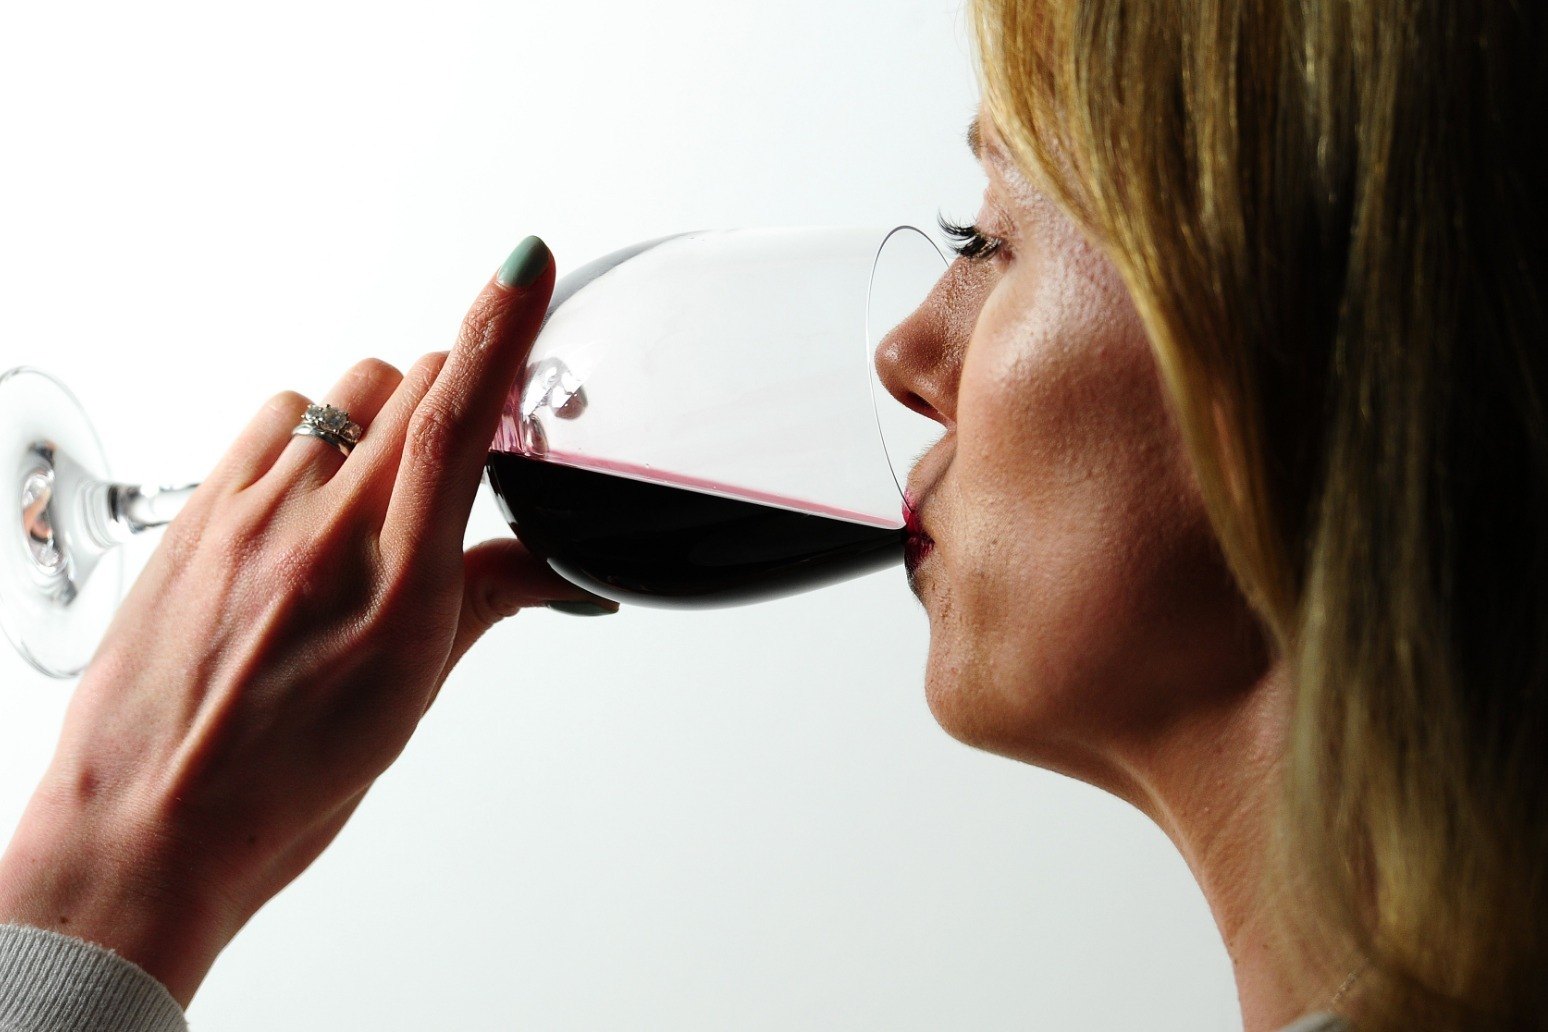 Red wine can help lower blood pressure, study finds